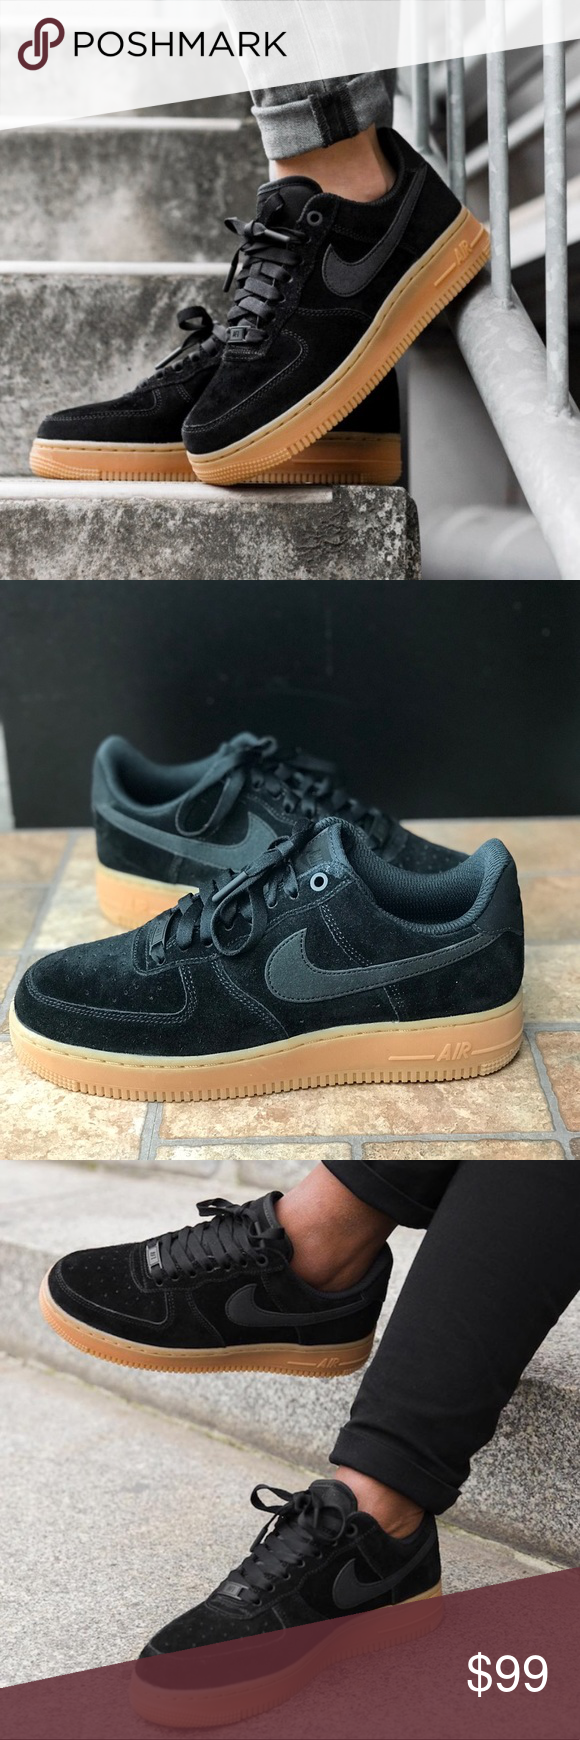 free shipping 02a78 02572 NWT Nike Air Force 1 07 SE Suede Black WMNS Brand new with no lid